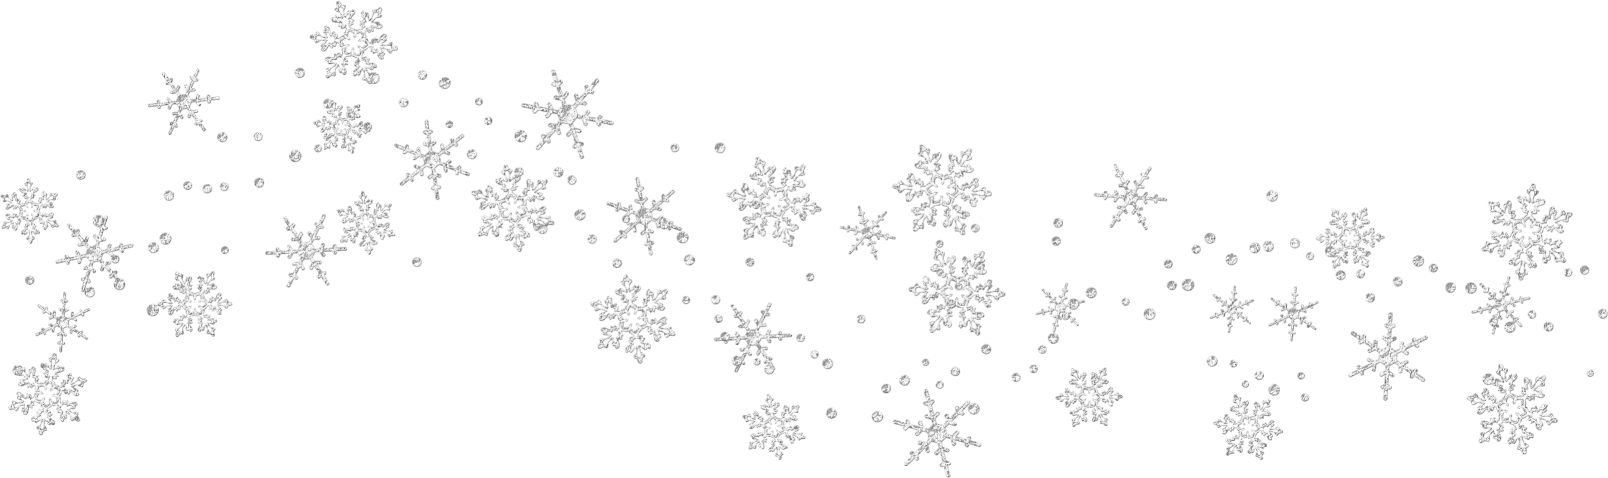 vector library Snow flakes snowflakes transparent. Snowflake borders clipart.